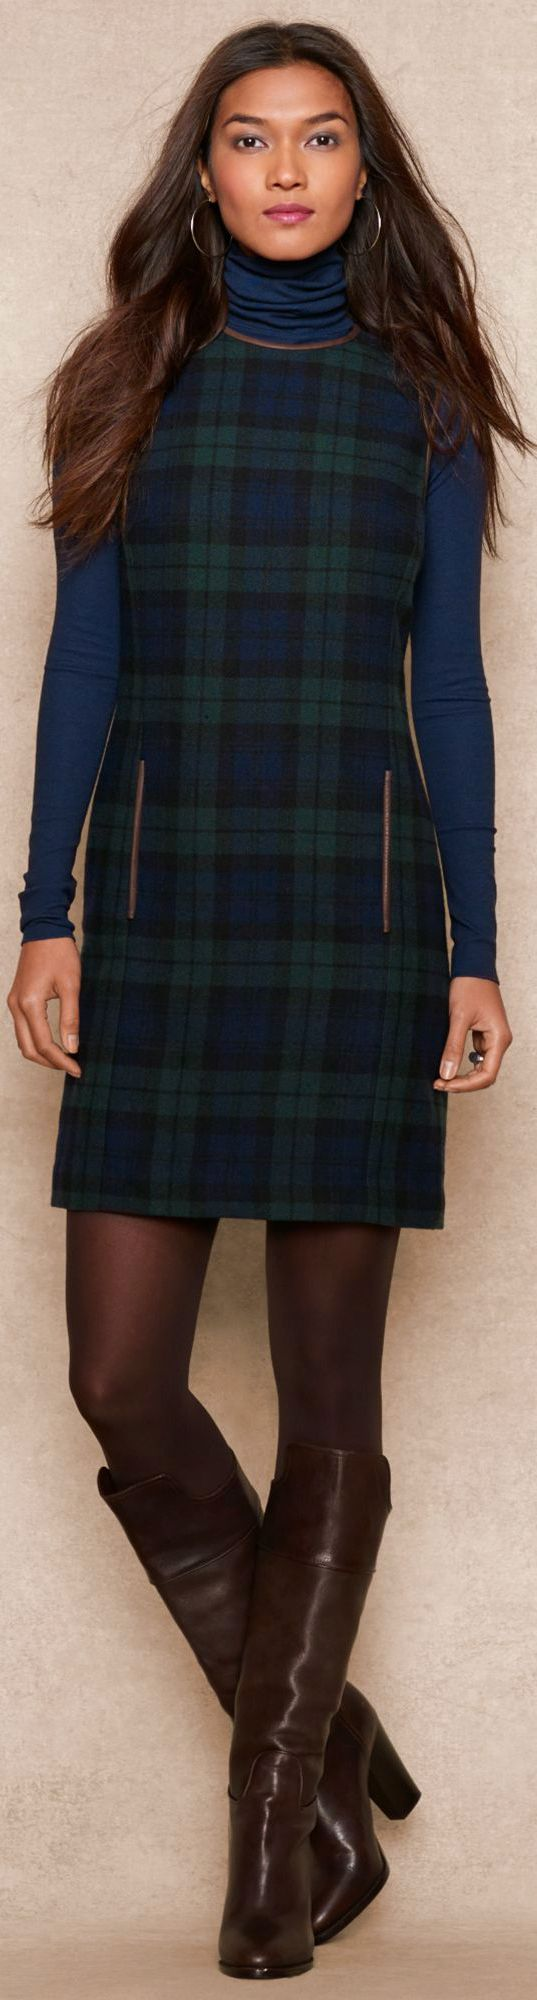 Ralph Lauren Blue Label ●  Fall 2013 | The House of Beccaria #